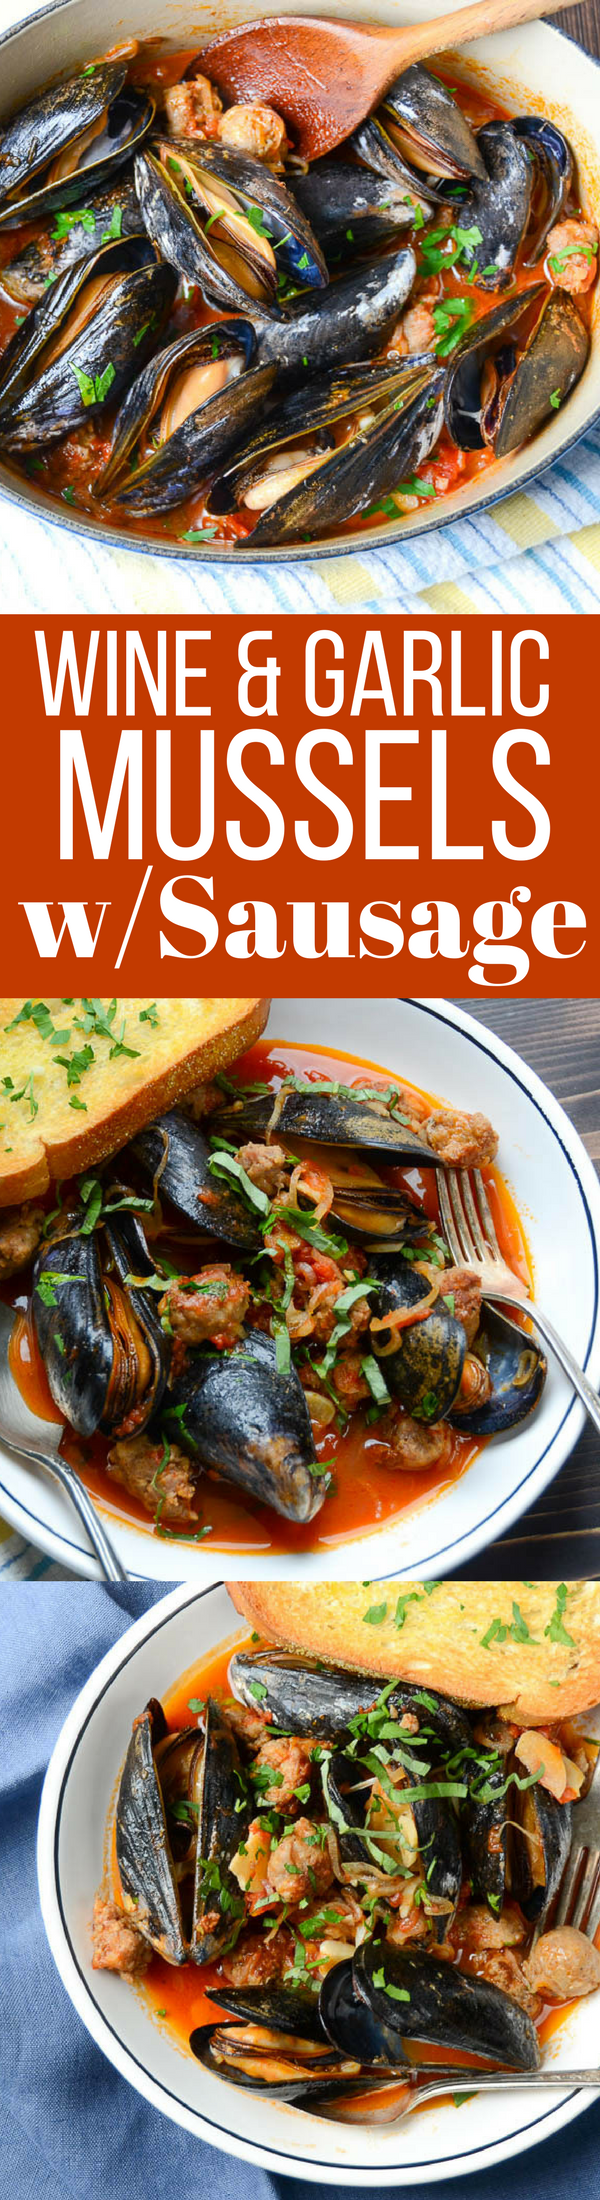 This simple one pot meal is ready in minutes.  Wine and Garlic Mussels with Sausage is an easy recipe that really satisfies!